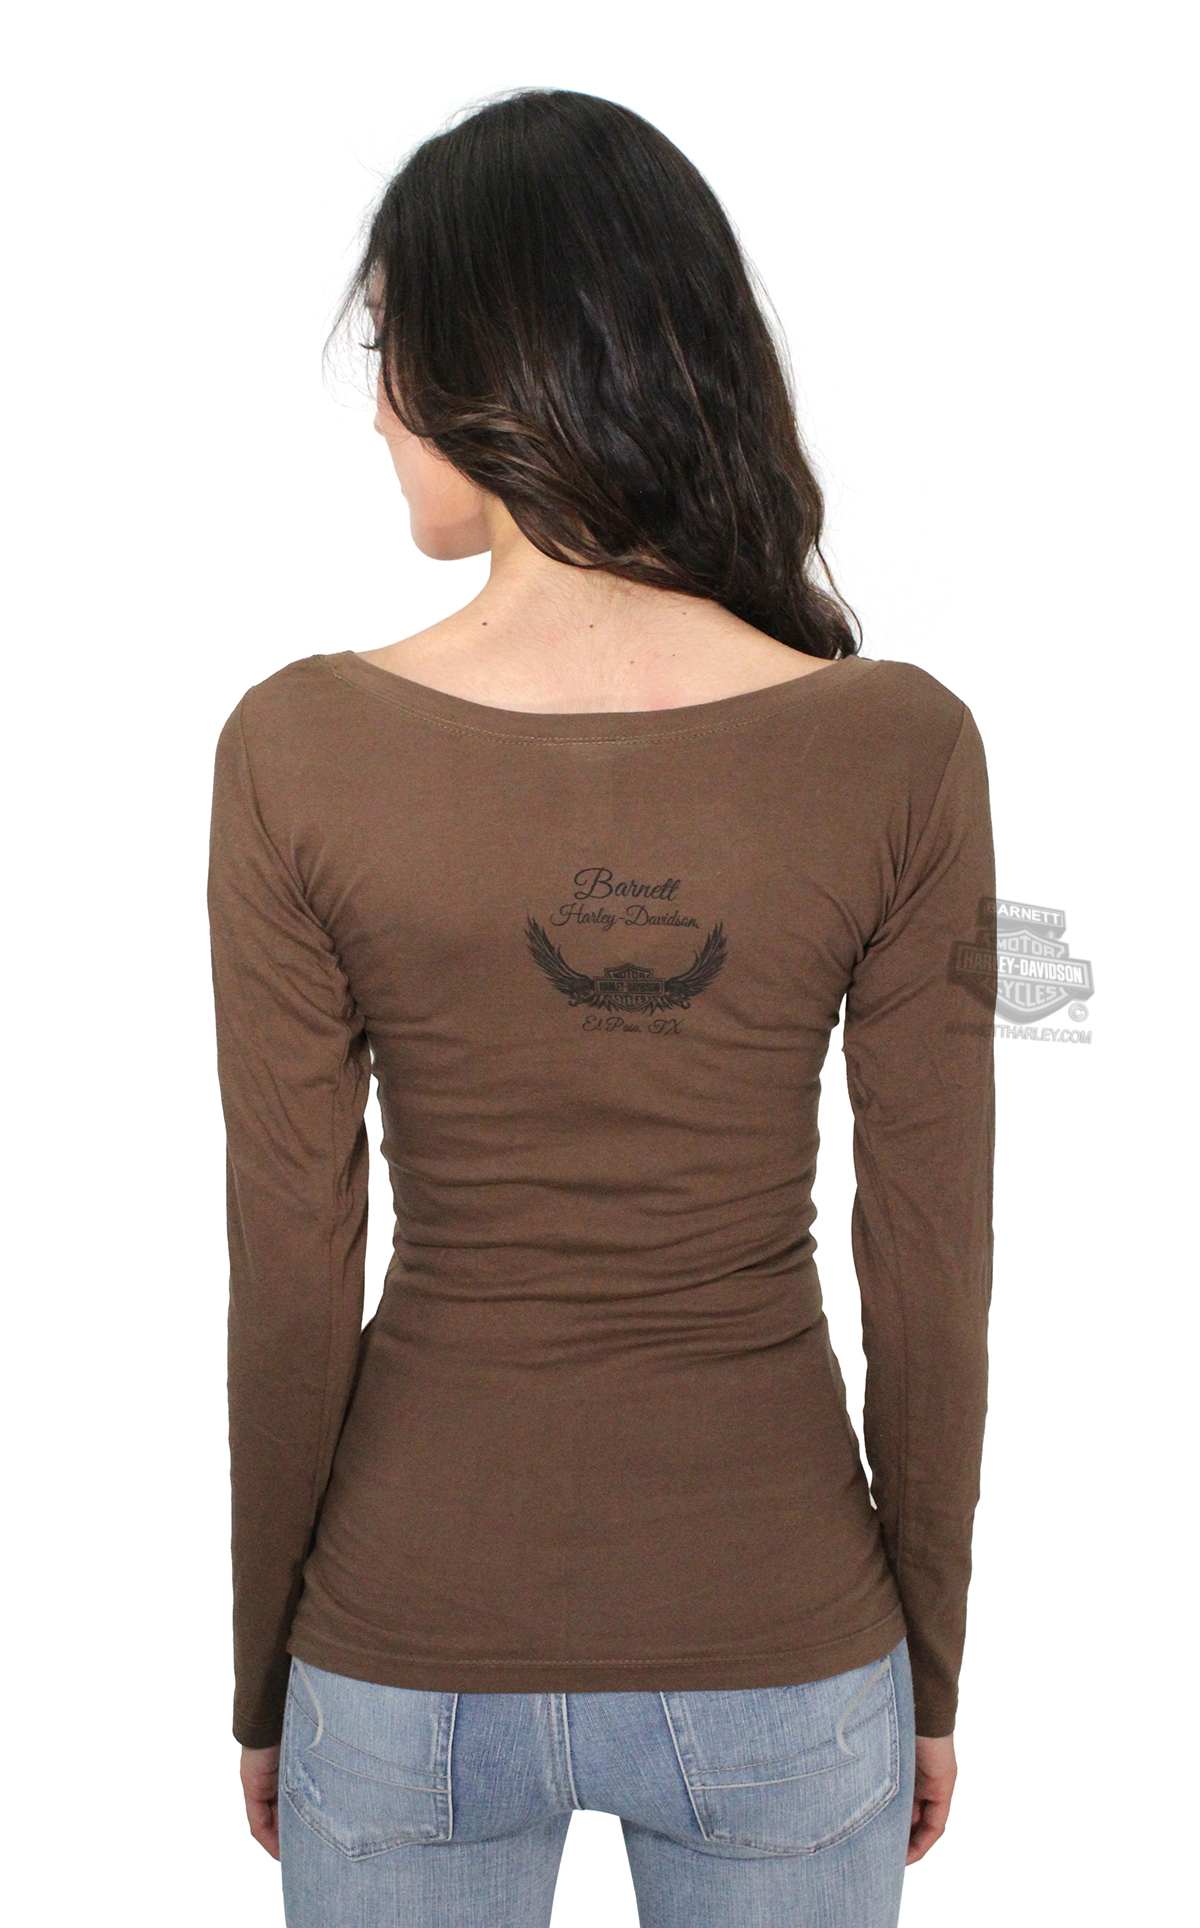 Brown Long Sleeve Shirts: ragabjv.gq - Your Online Tops Store! Get 5% in rewards with Club O! Coupon Activated! Skip to main content FREE Shipping & Easy Returns* Search. Earn Rewards with Overstock. Missed Rewards. La Cera Women's Brown Animal Print Square Neck Tunic.